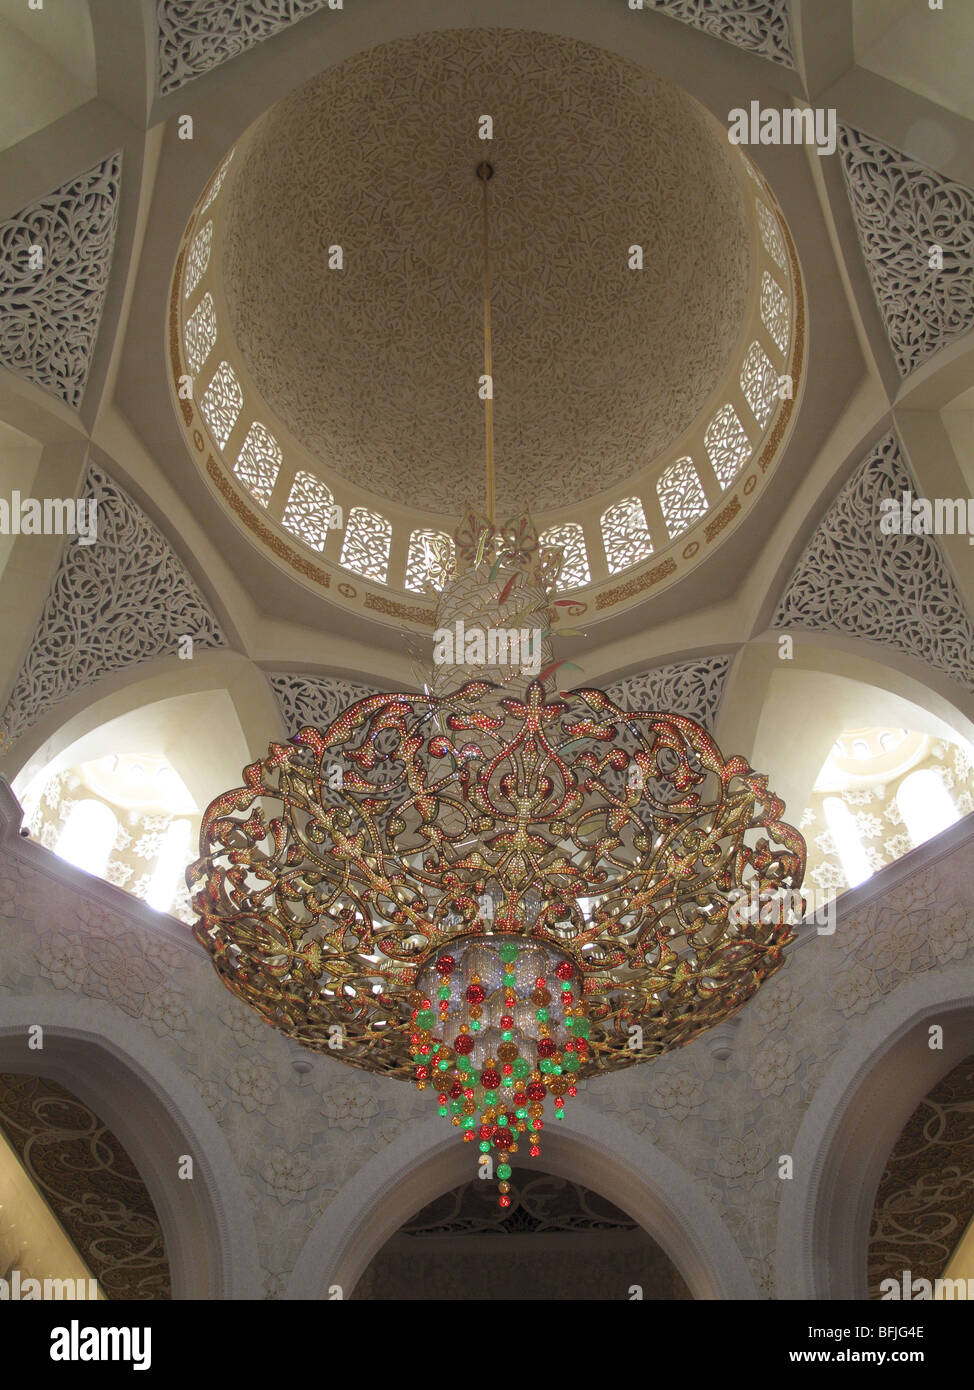 Large chandelier from the main dome of Sheikh Zayed Bin Sultan Al Nahyan Mosque - Stock Image